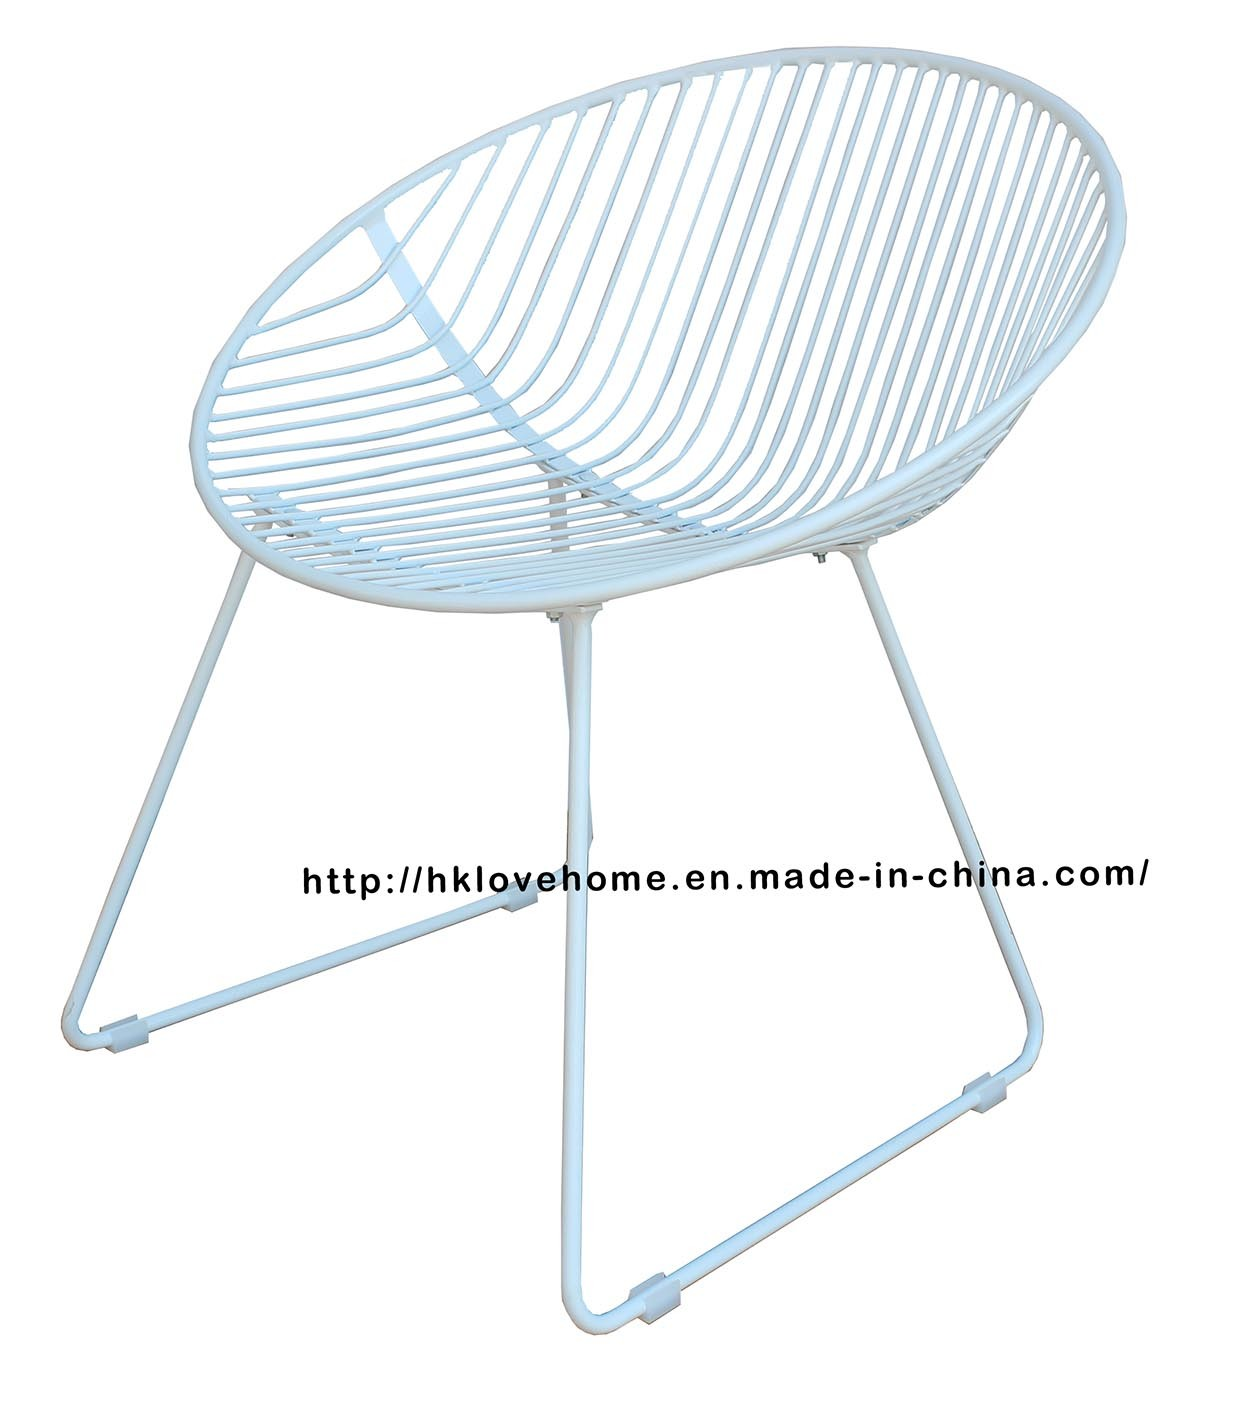 Admirable Hot Item Restaurant Garden Metal Outdoor Dining Bend Kd Wire Chair Creativecarmelina Interior Chair Design Creativecarmelinacom